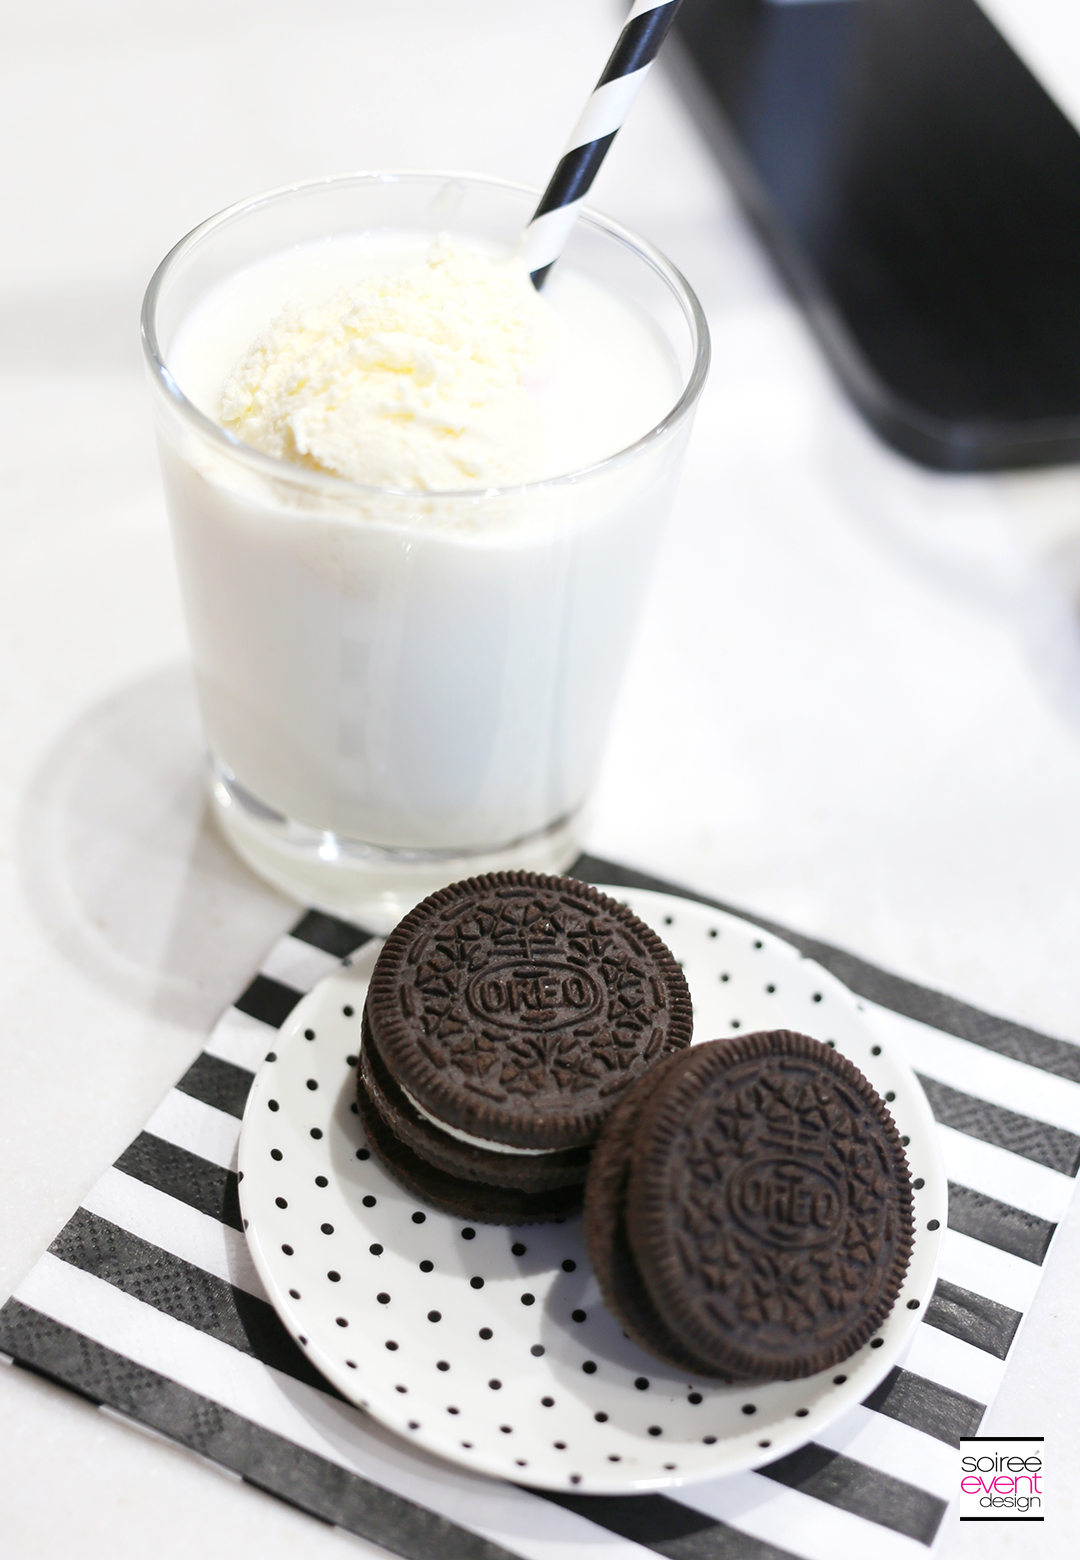 Vanilla Milk and OREO Cookies